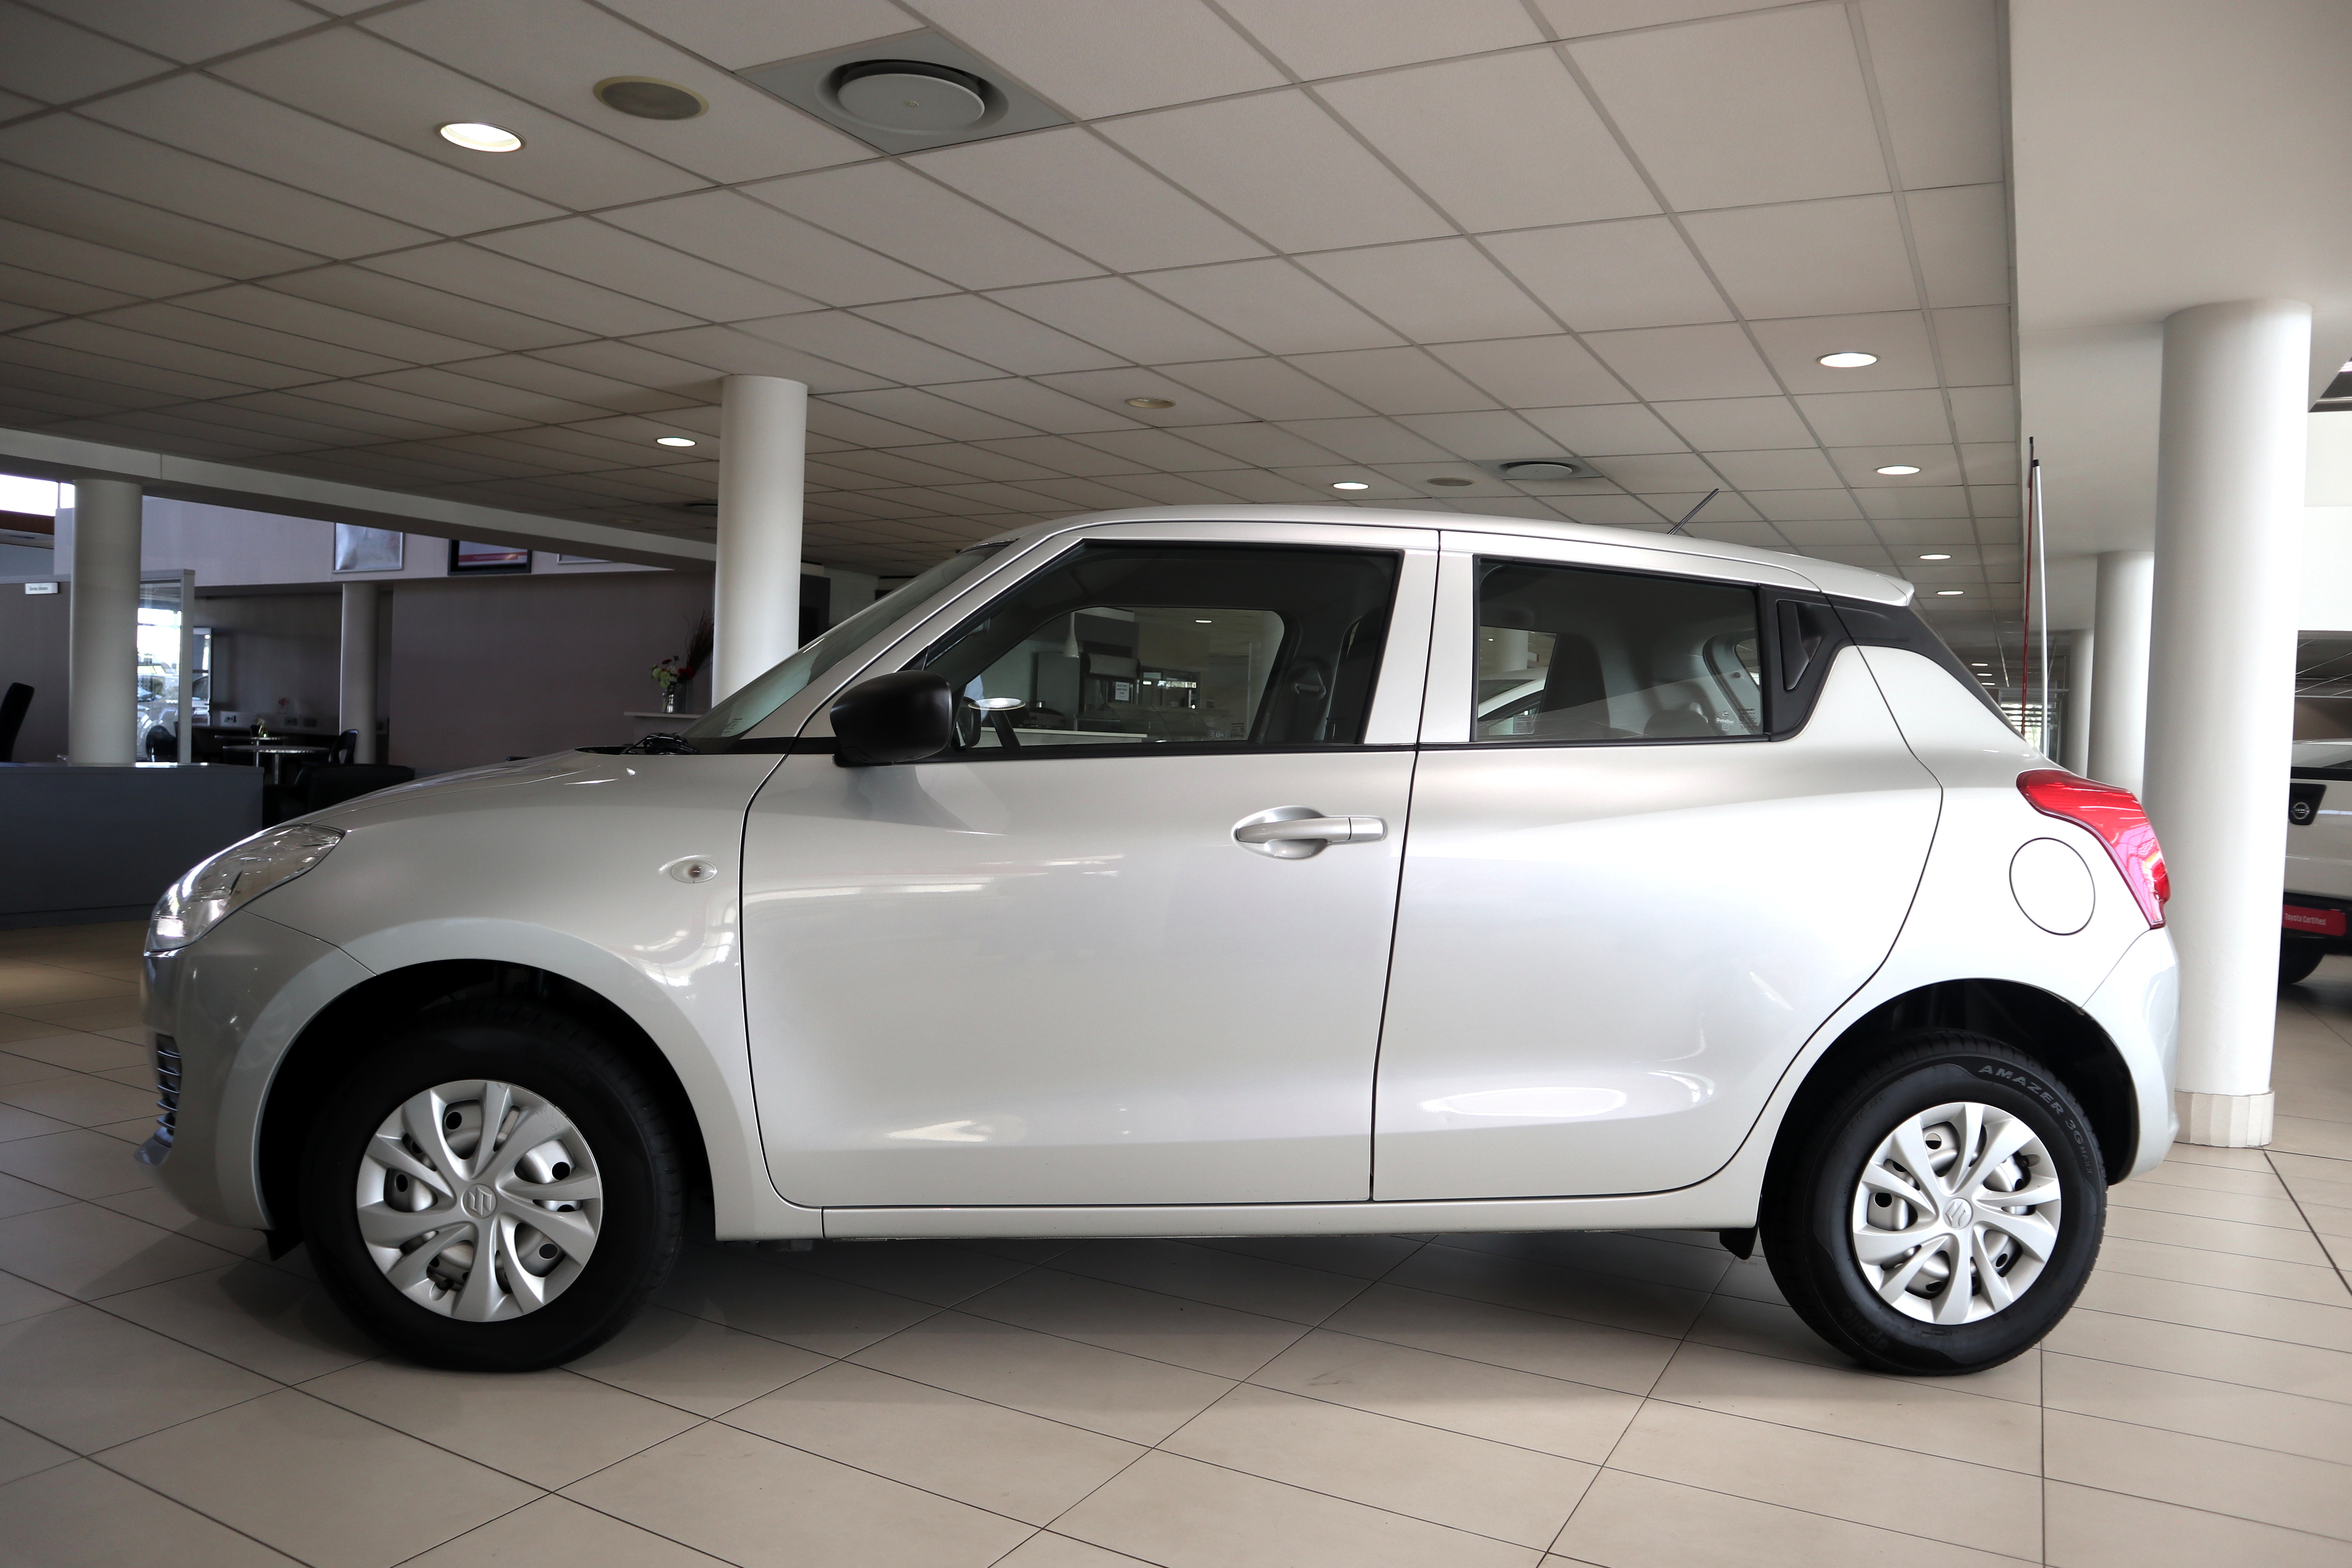 SUZUKI SWIFT 1.2 GA - Side